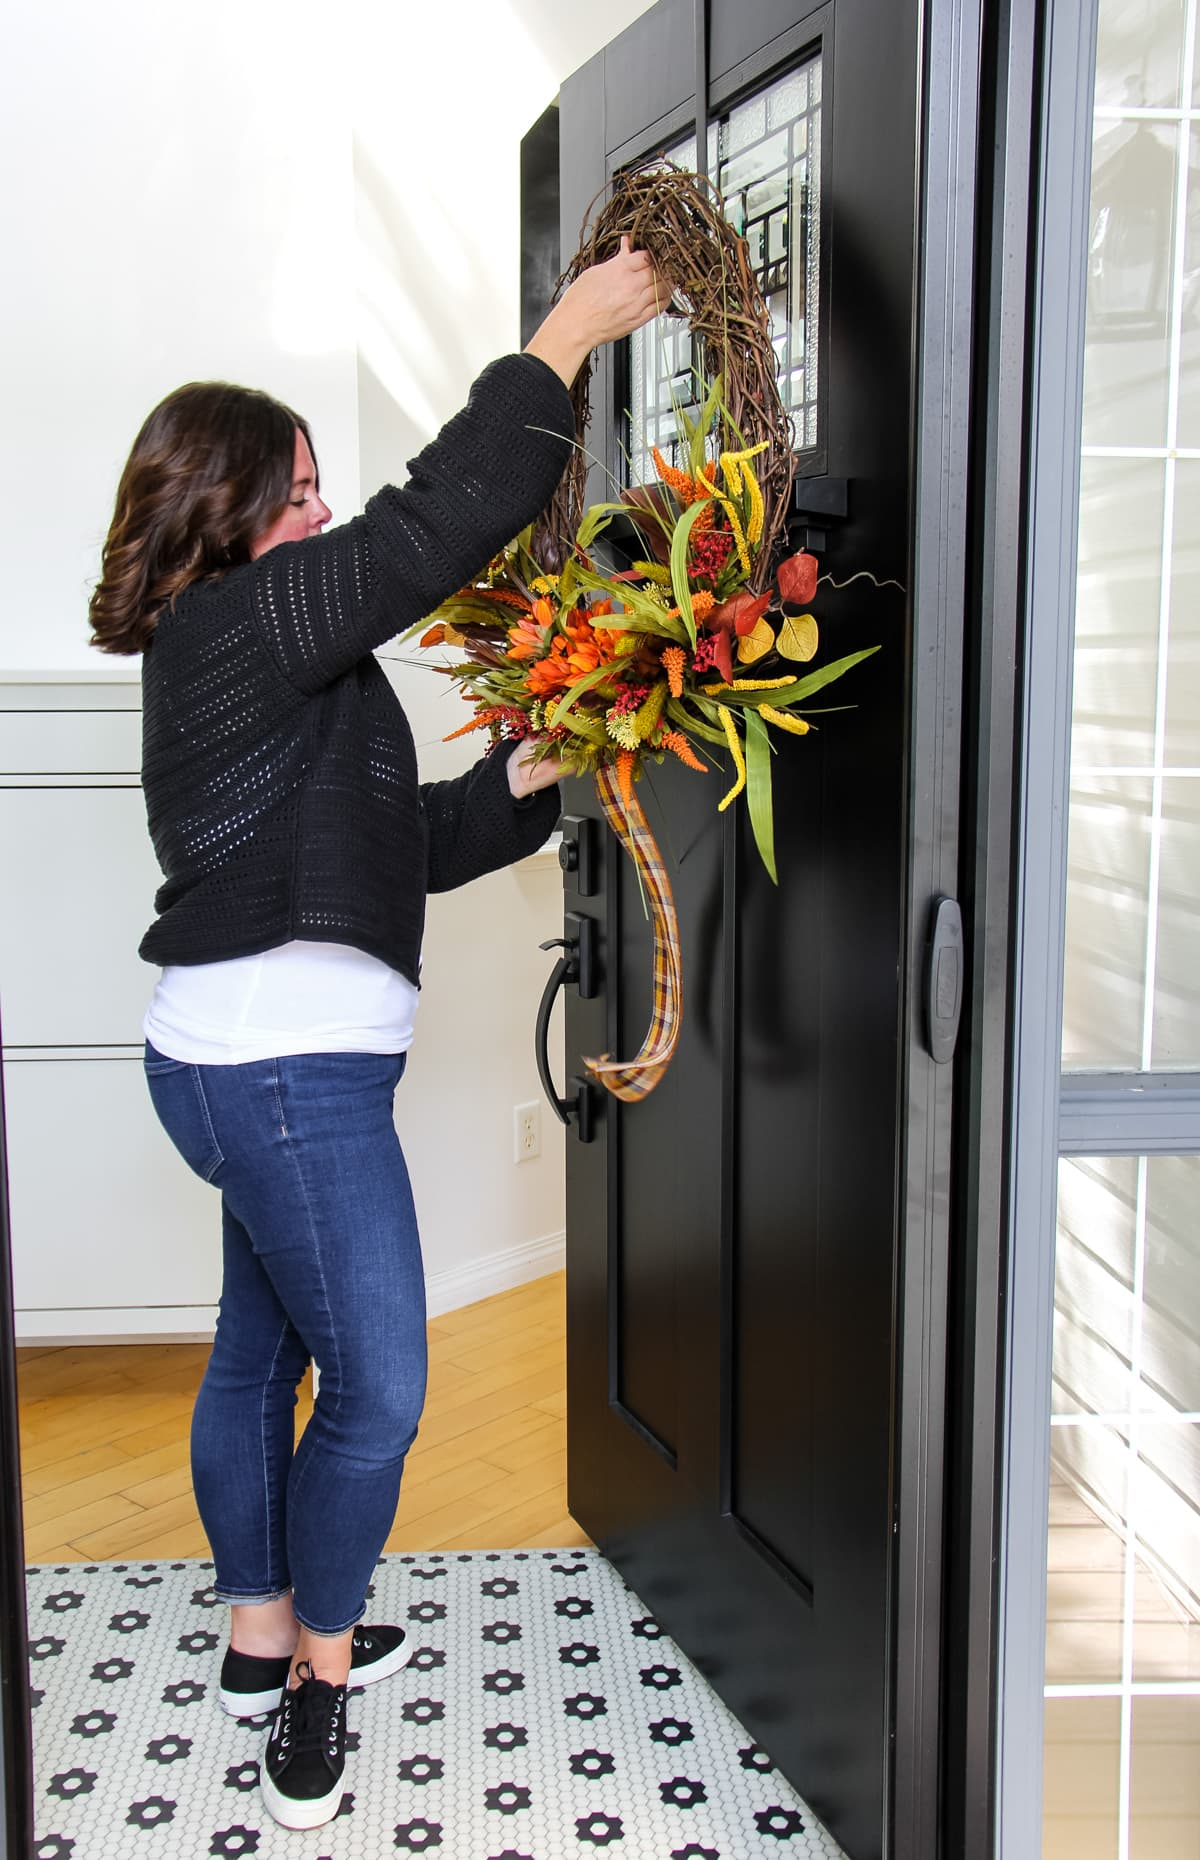 a woman is hanging a large grapevine wreath on a black door. it is decorated with dried fall florals stems and a plaid ribbon